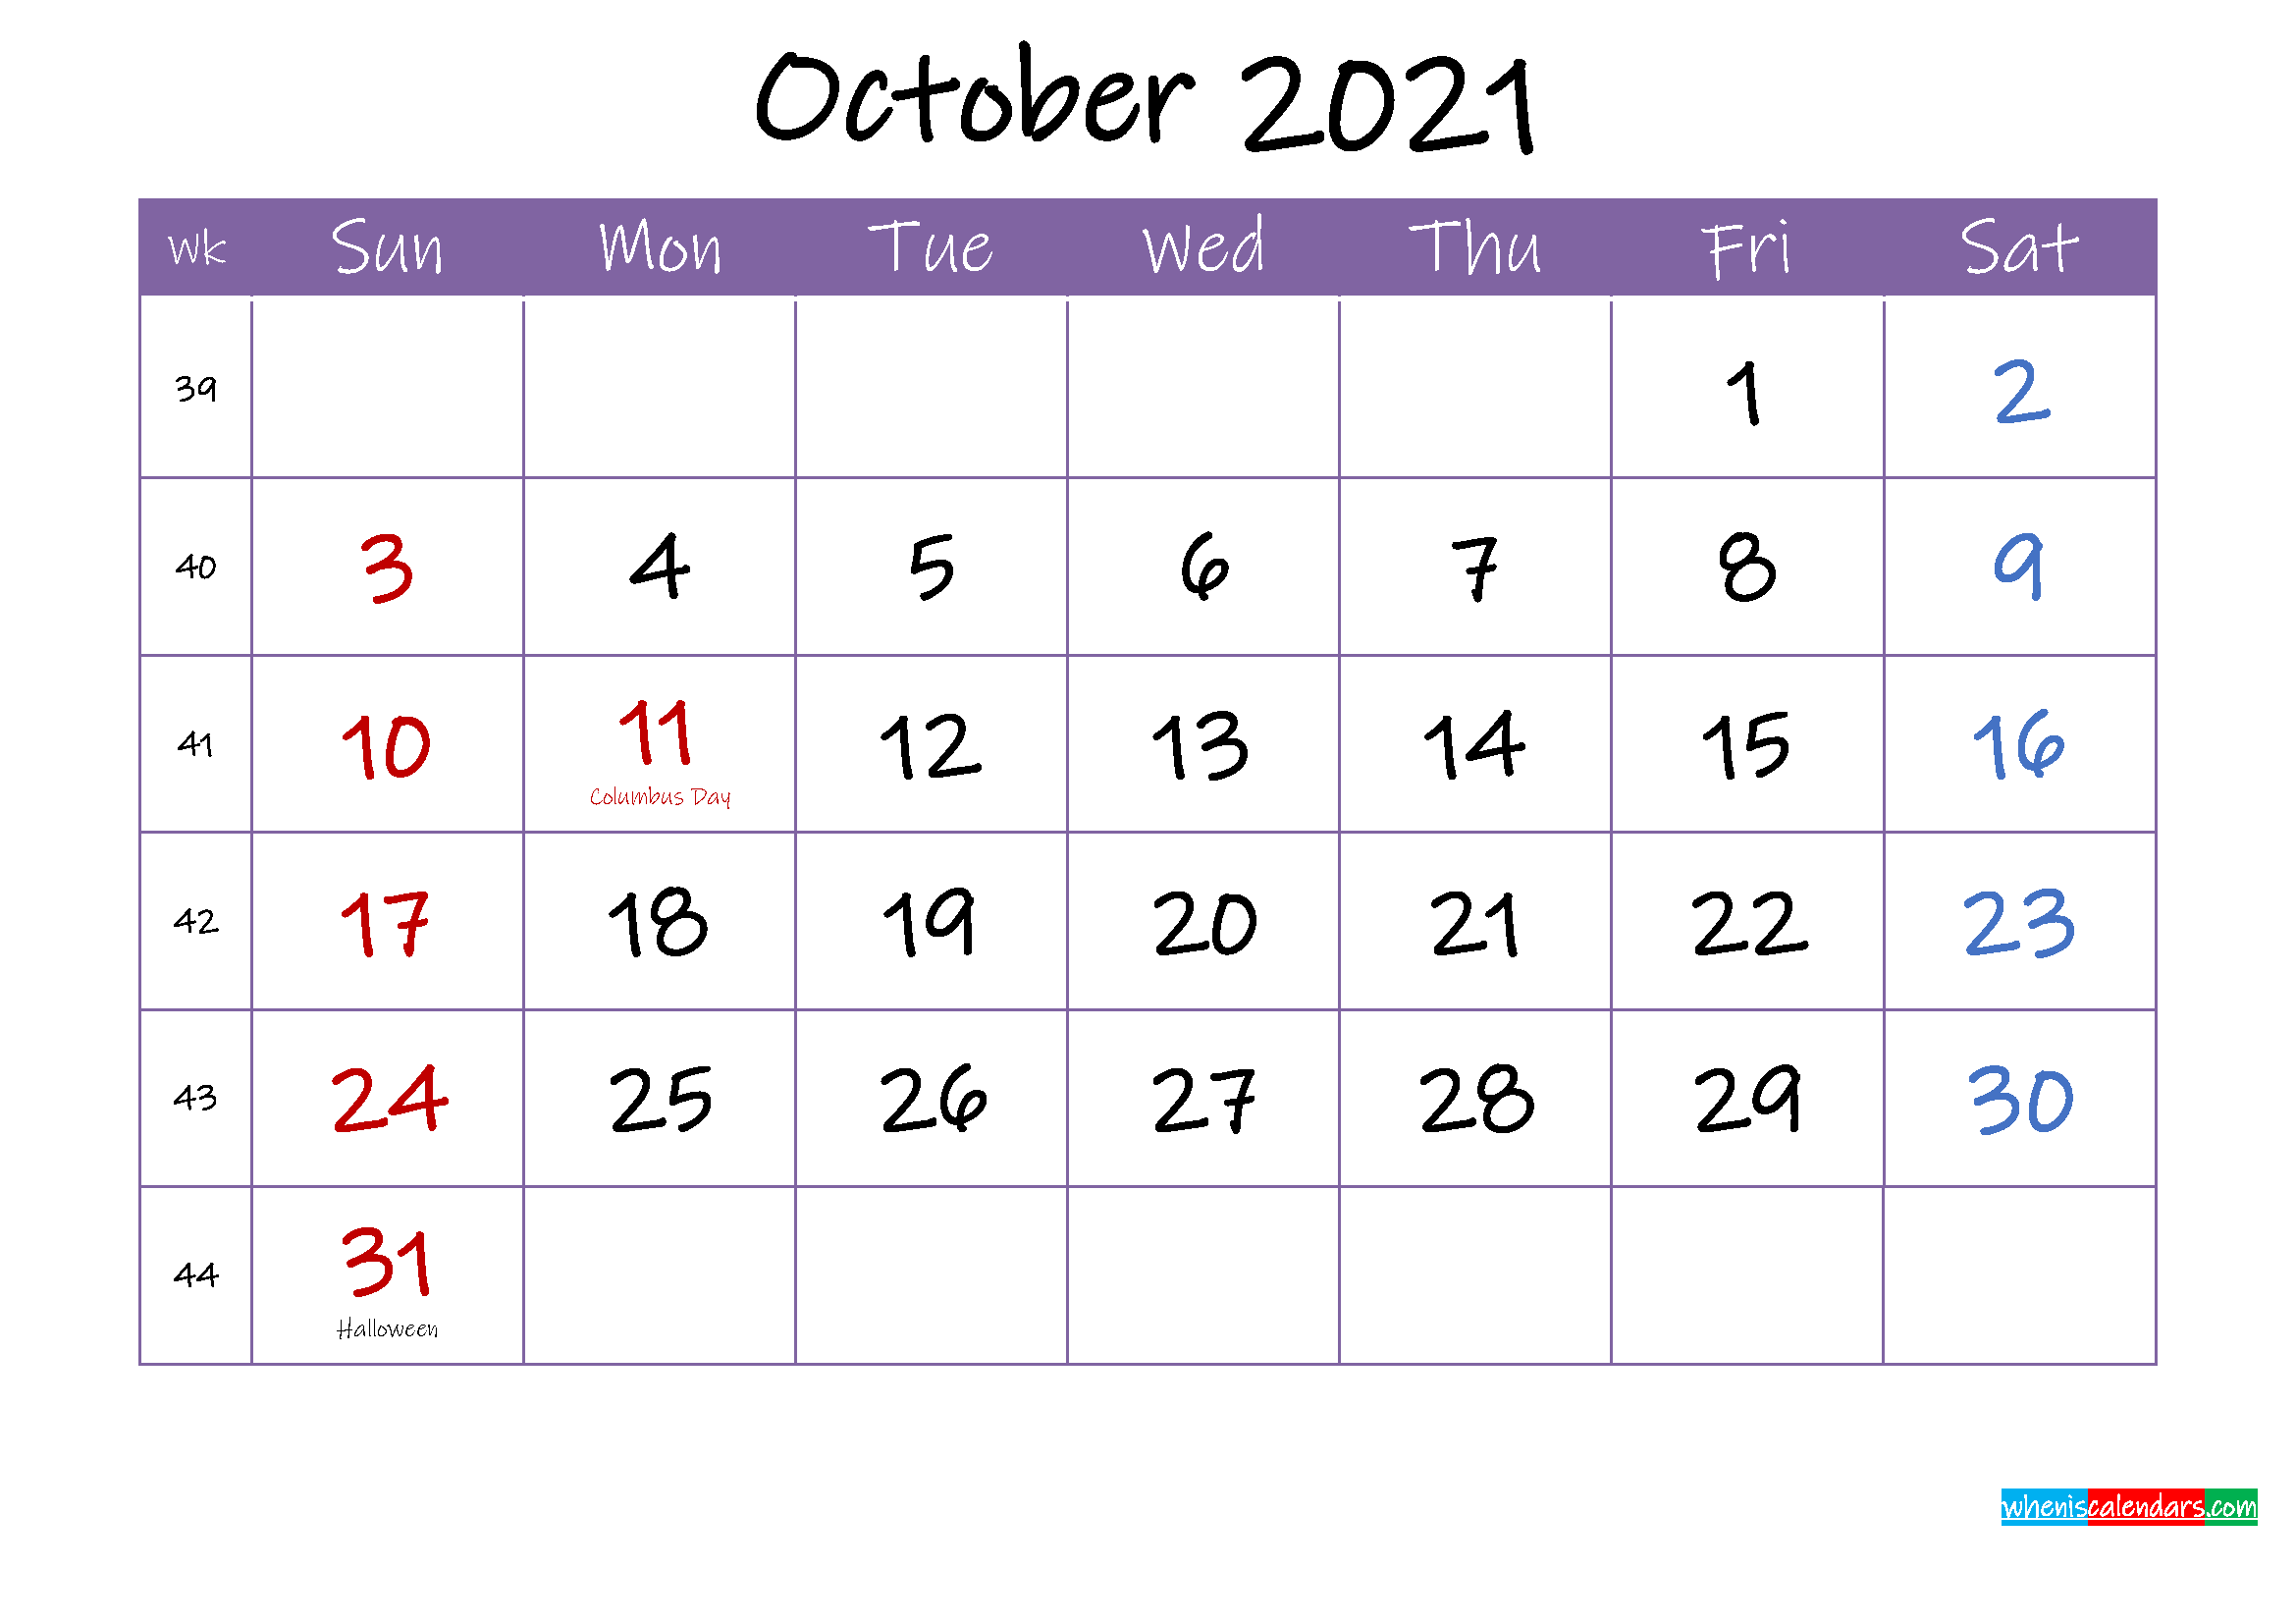 October 2021 Calendar With Holidays Printable Template